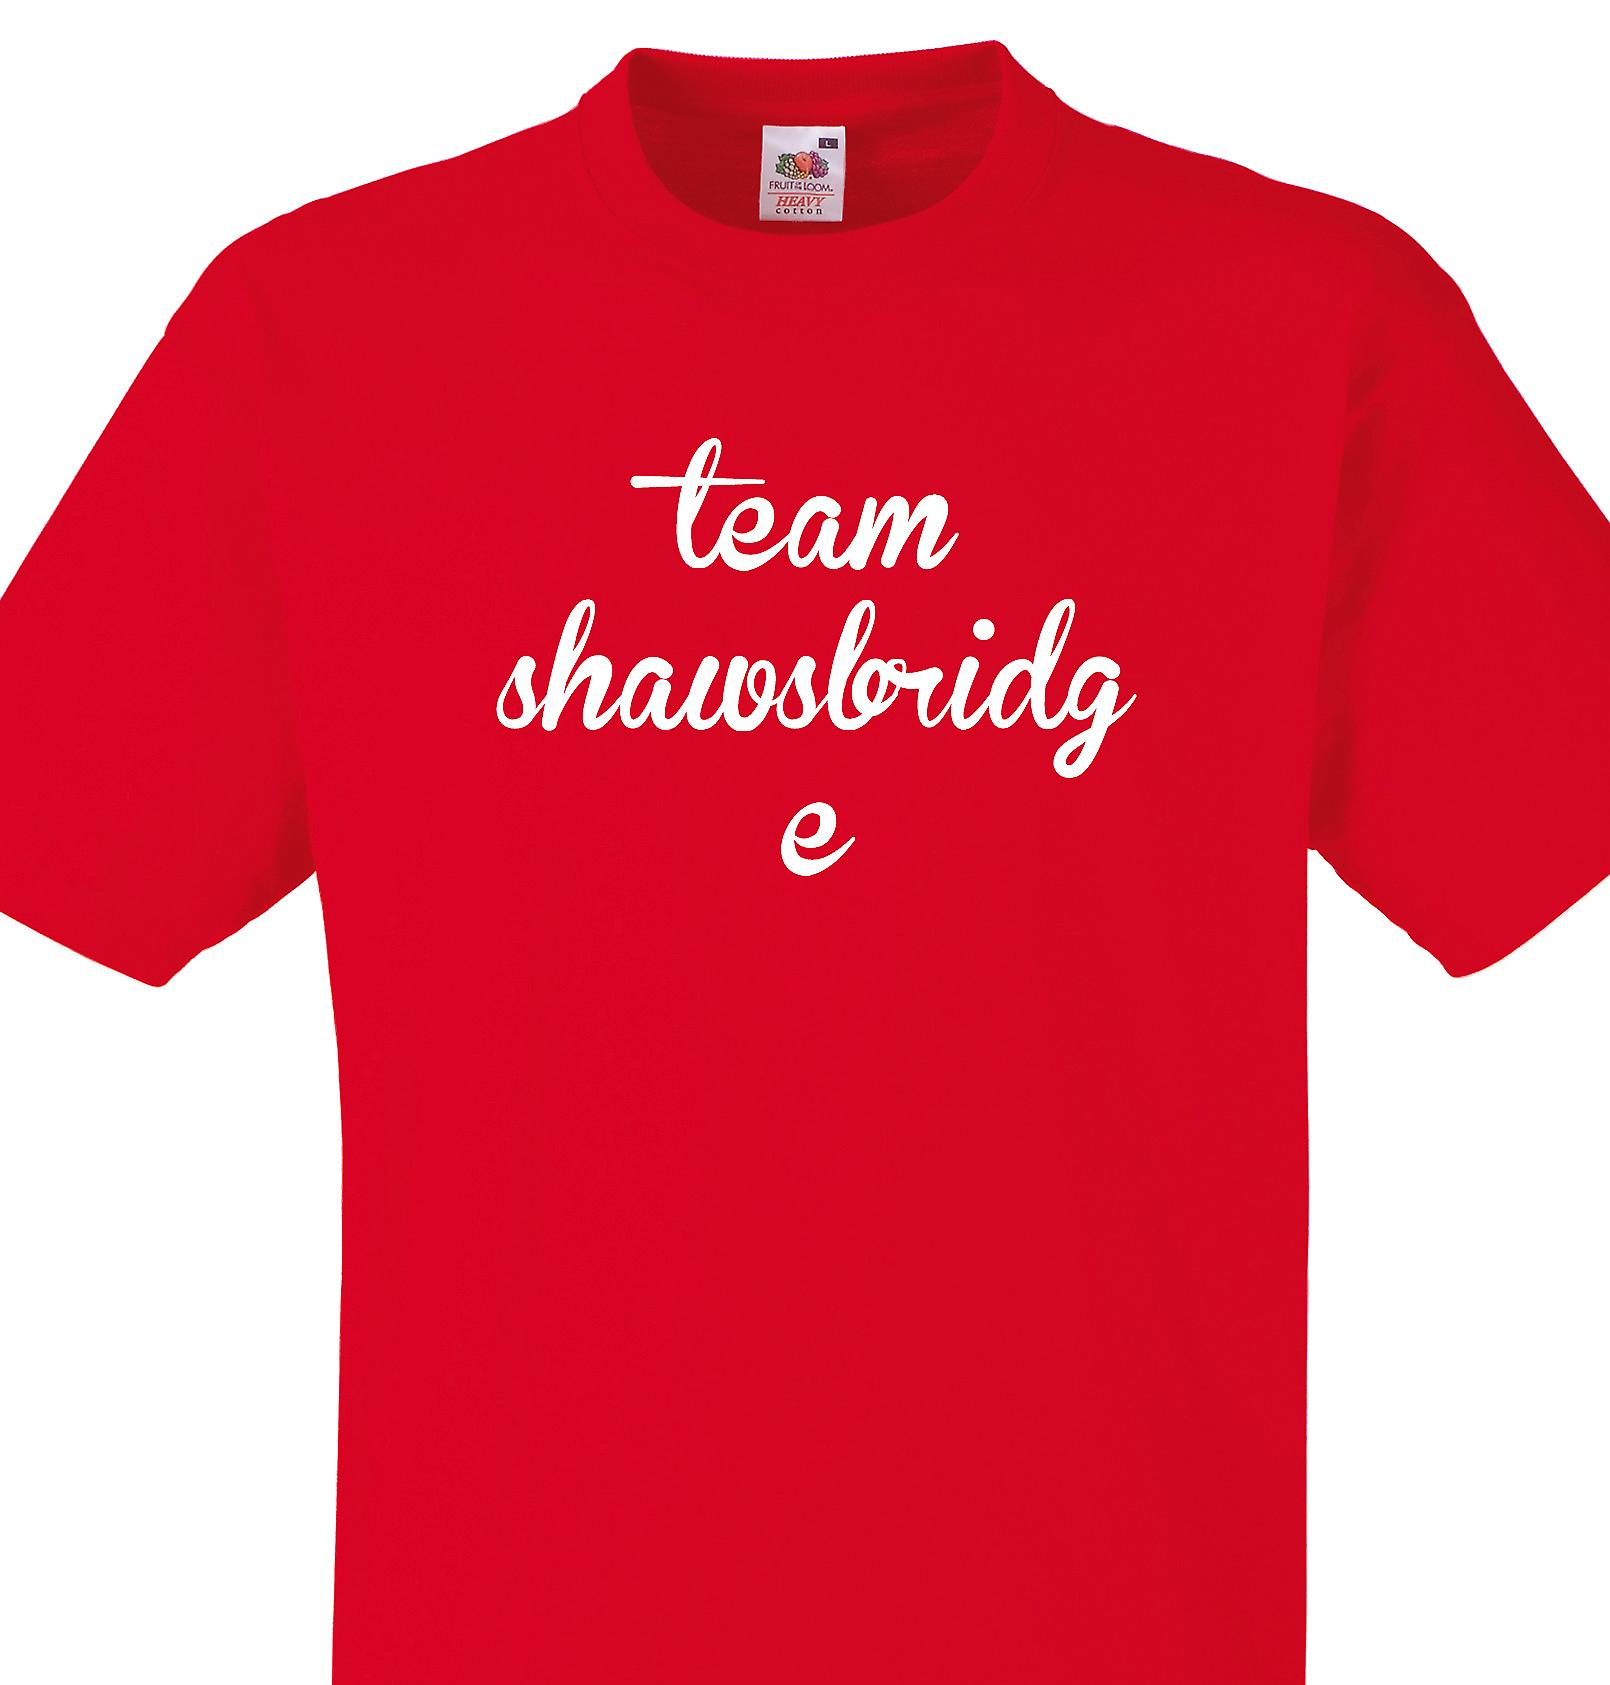 Team Shawsbridge Red T shirt